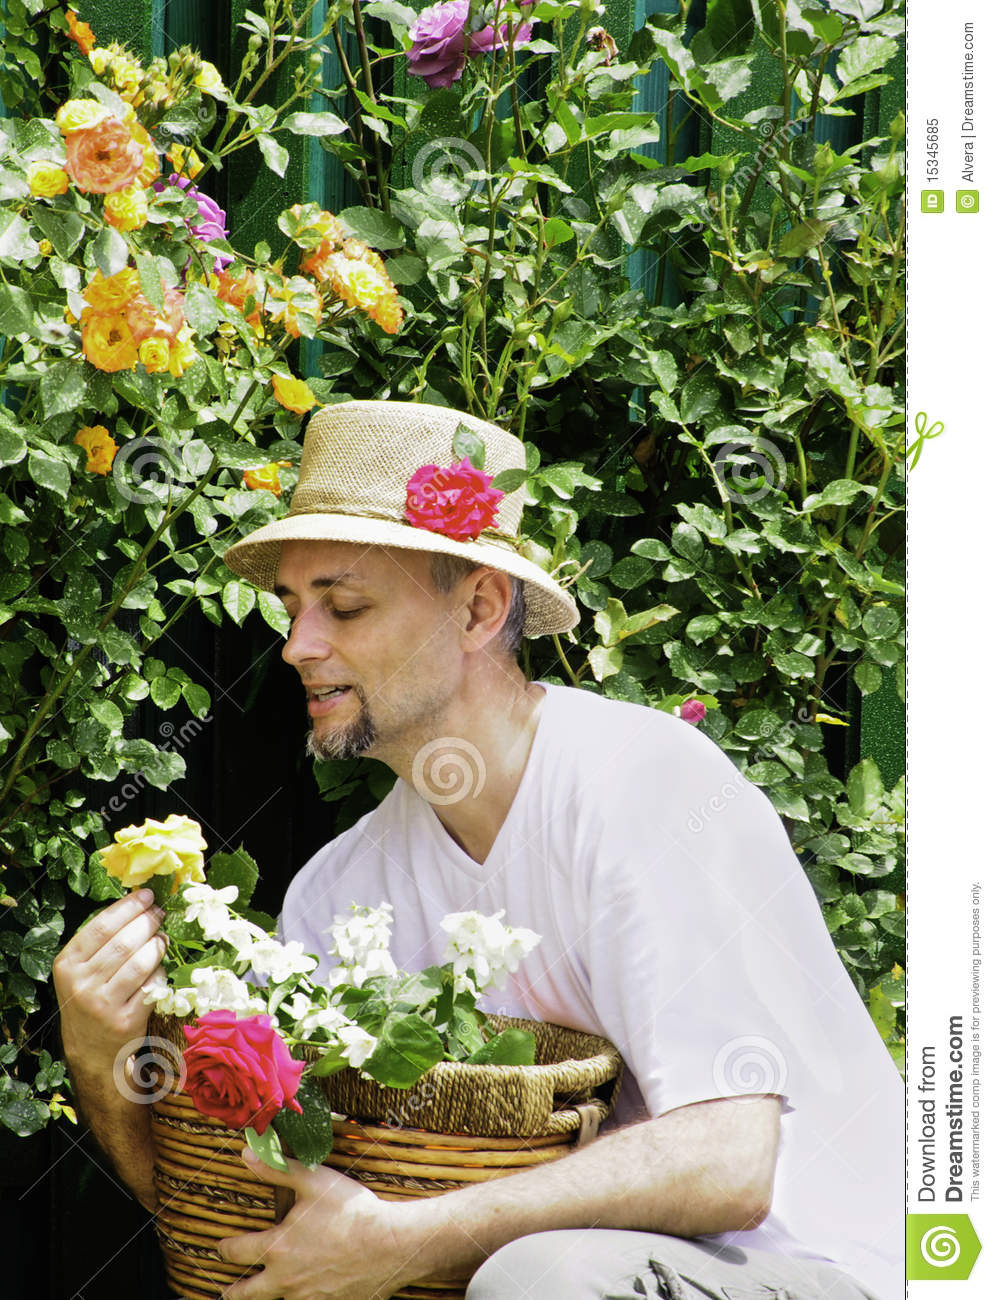 Foto de Stock Royalty Free Man in garden picking roses Imagem